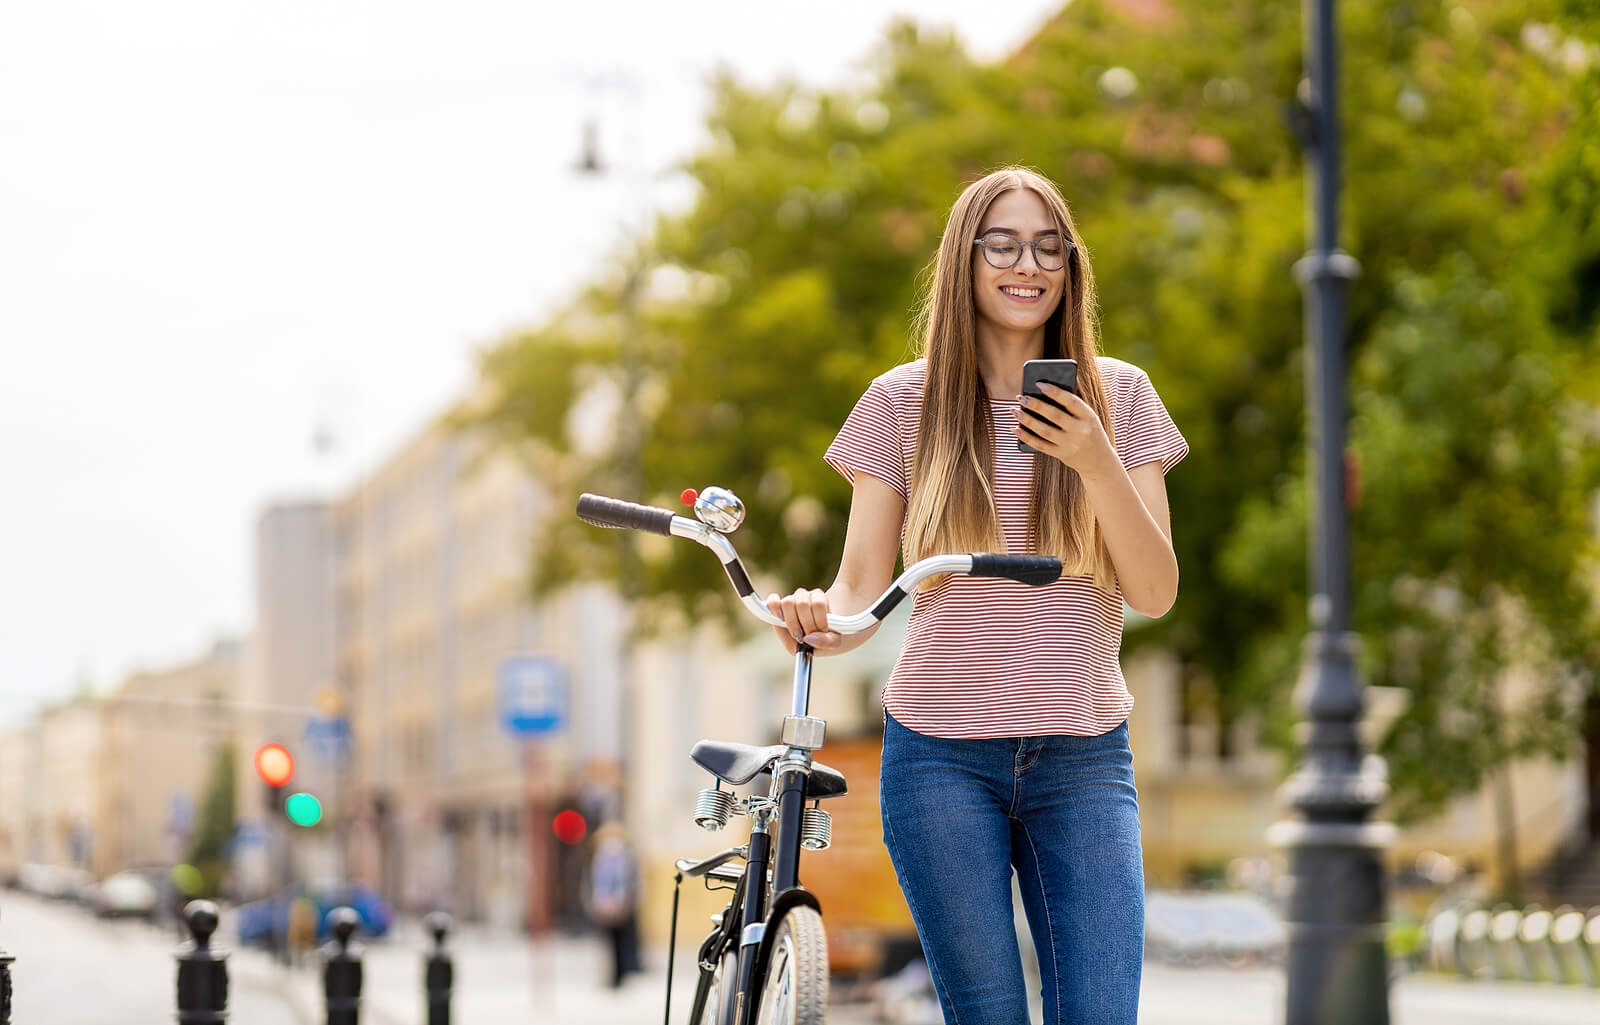 A woman on her bike while holding her phone.